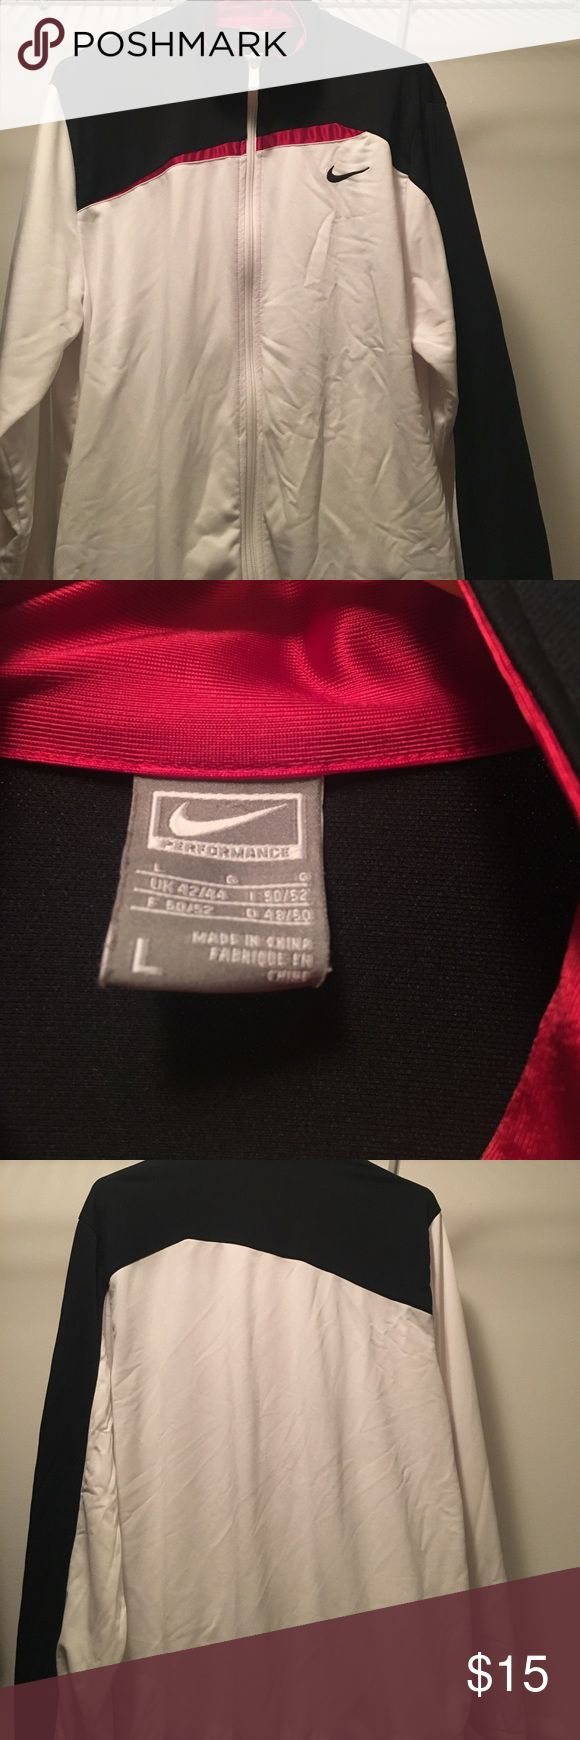 Men's large Nike zip up jacket White with black and red accent zip up jacket! Great for cold summer nights or fall. Nike Jackets & Coats Lightweight & Shirt Jackets